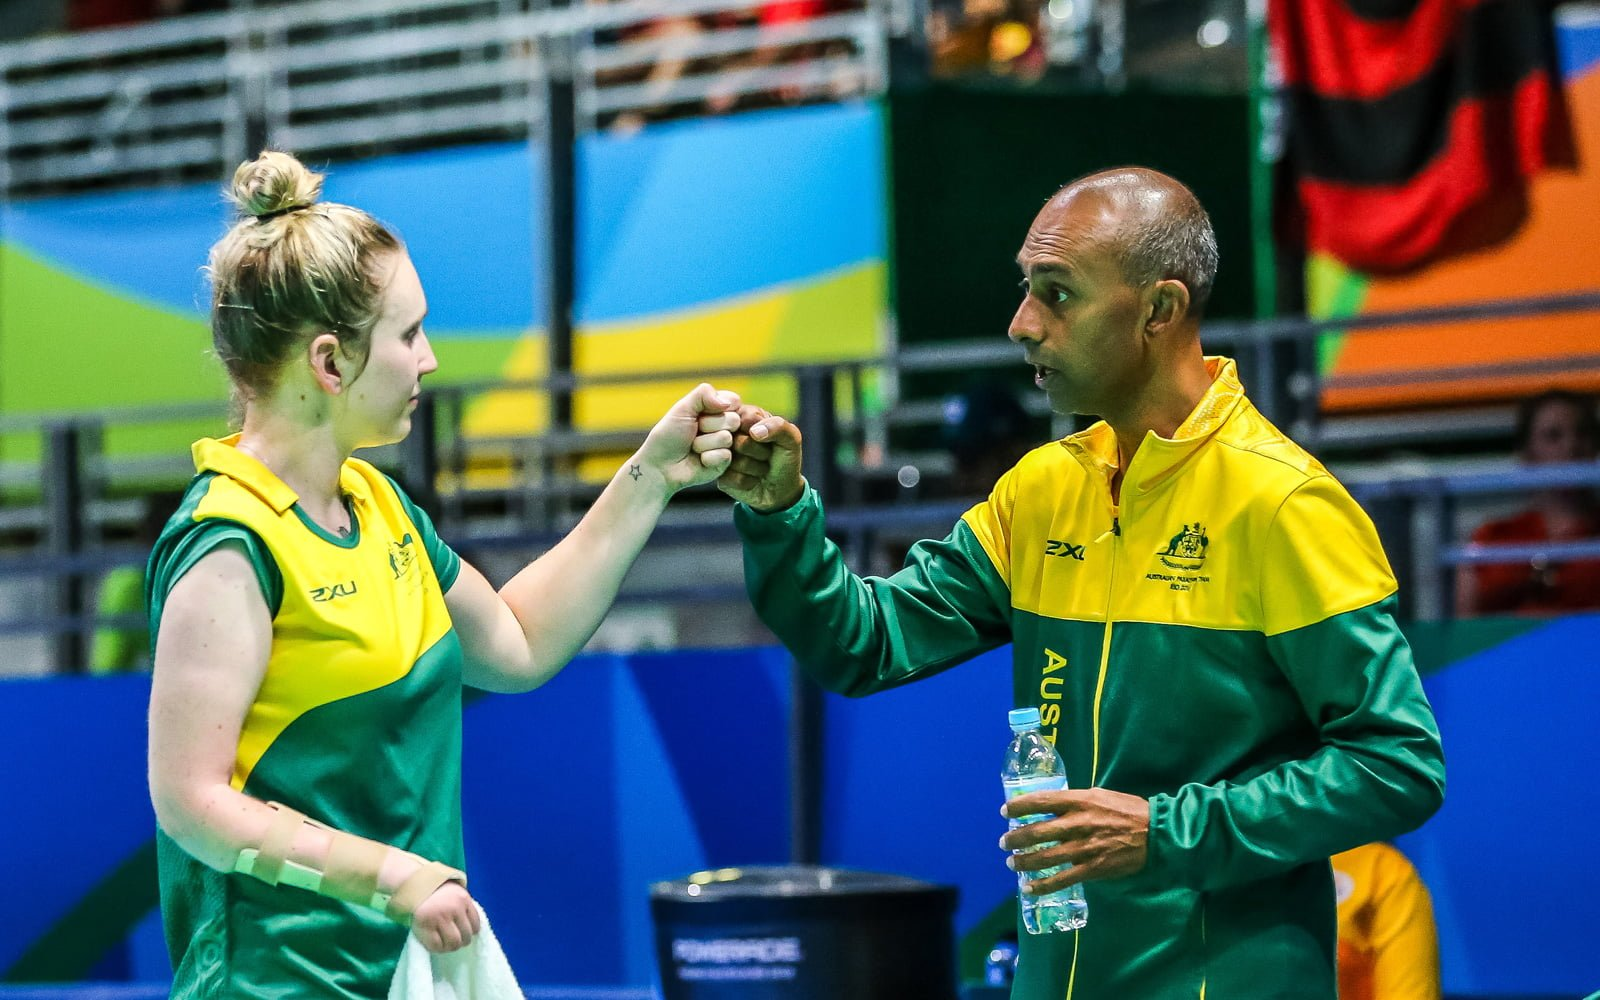 Coach Education Series helping to drive Para-table tennis